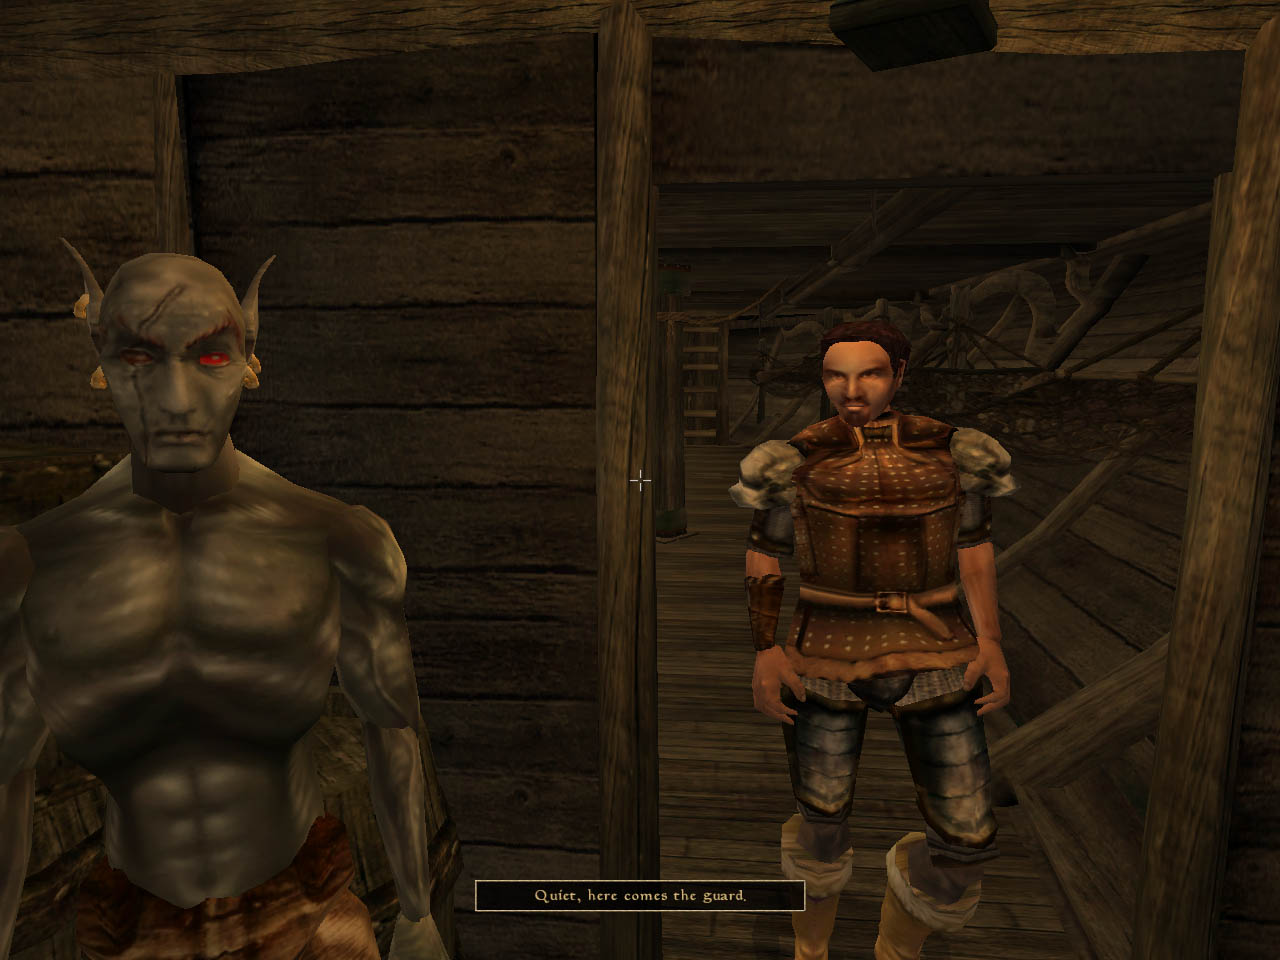 Elder_Scrolls-Morrowind_%252528PC%252529_02.jpg